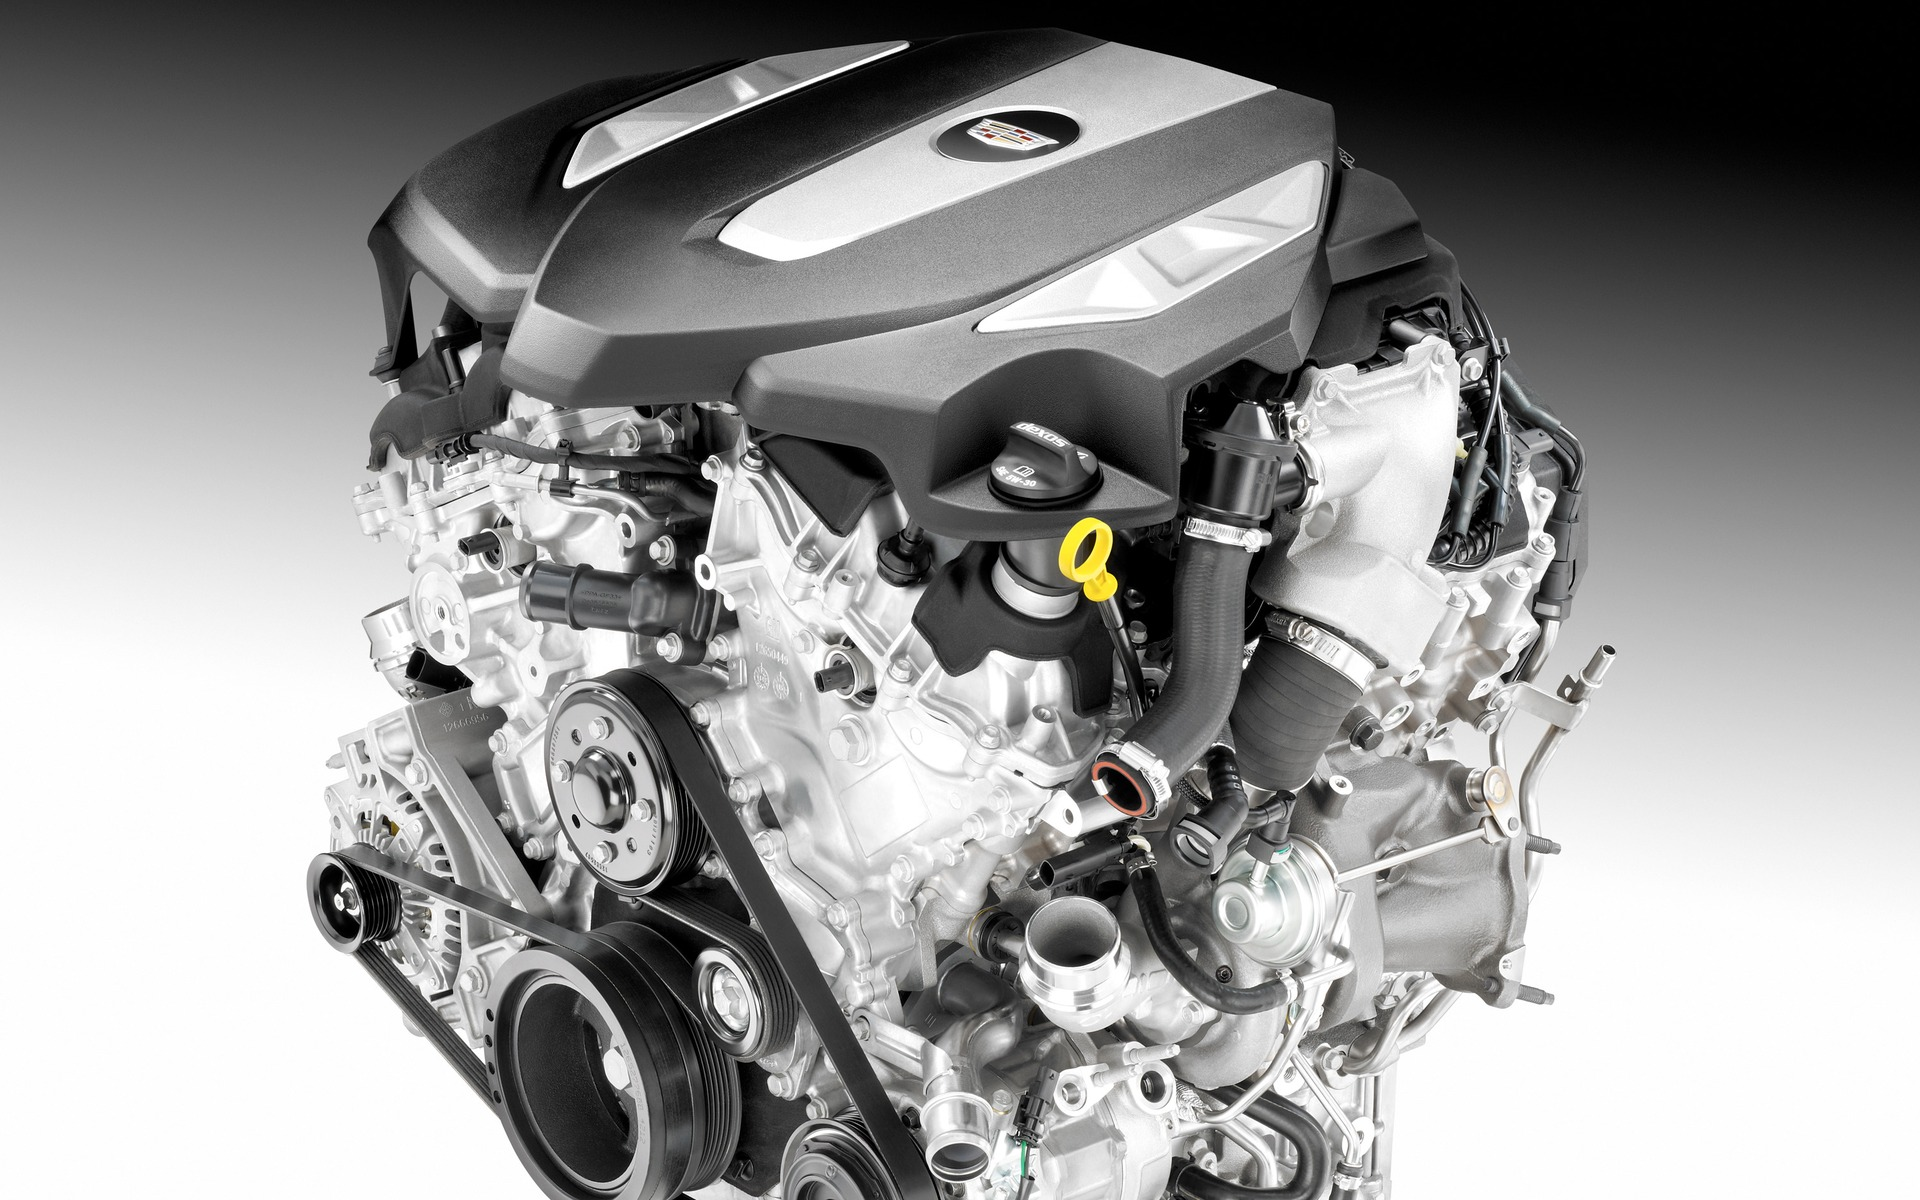 2016 Cadillac V6 Engines: The Best Of The Best? - The Car Guide